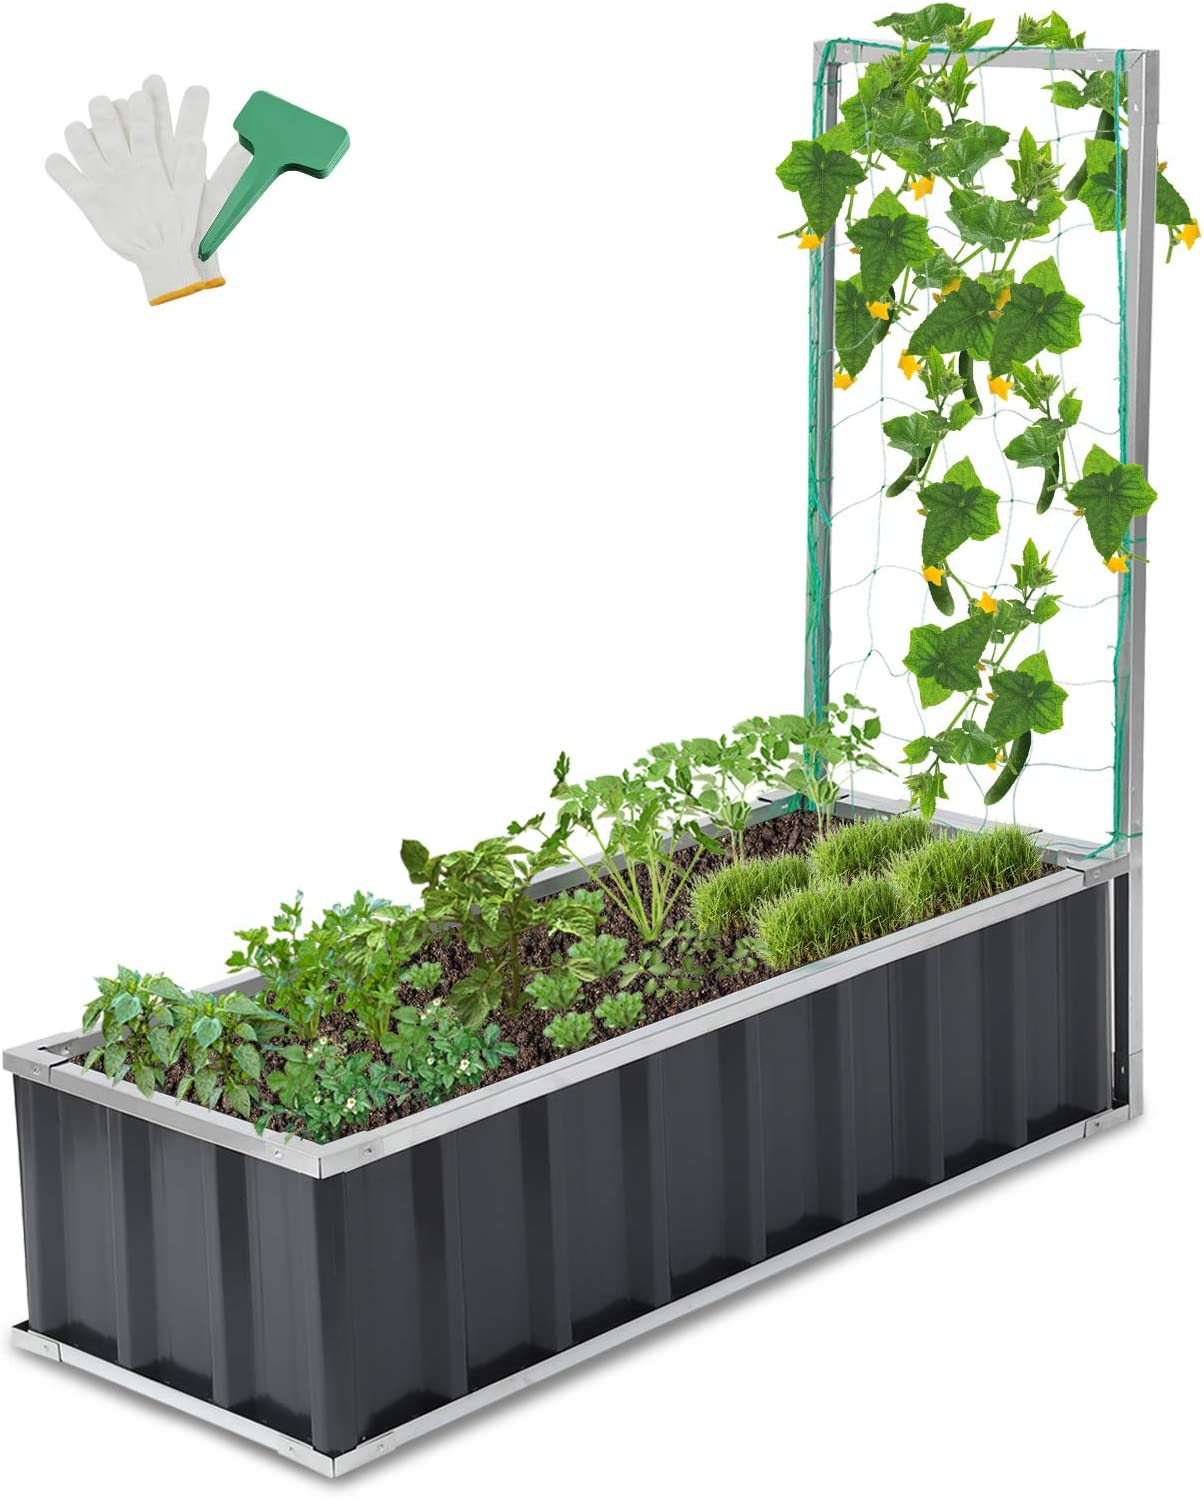 CEED4U 4 L x 1.5 W Feet Metal Raised Garden Bed with Trellis, Planter Box Steel Kit with 15 Packs Plant Labels and 1 Pair of Gloves for Vegetables, Flower, Herbs, Fruits (Dark Grey)